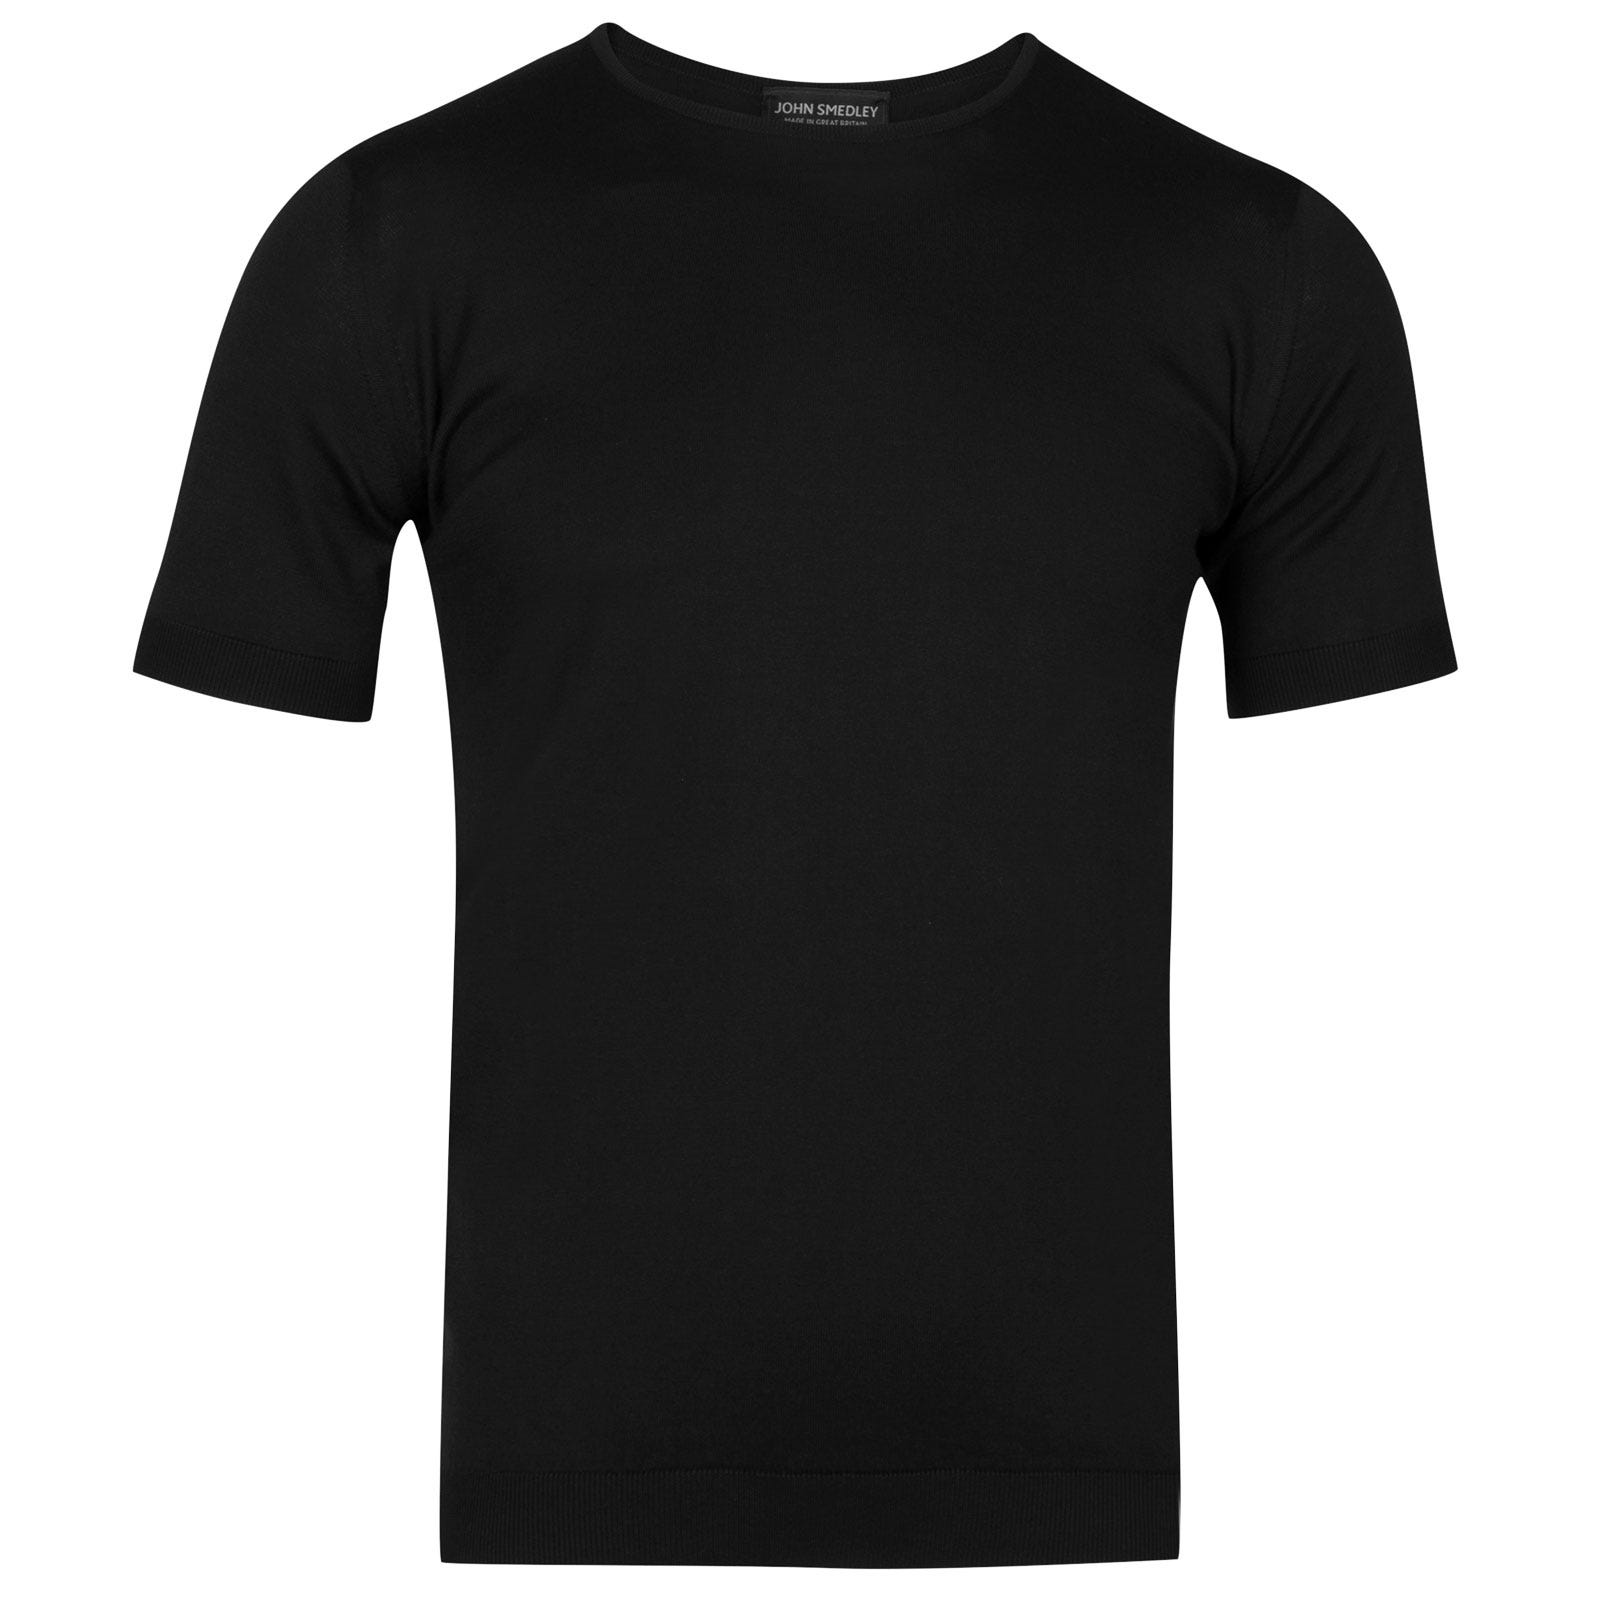 John Smedley belden Sea Island Cotton T-shirt in Black-S